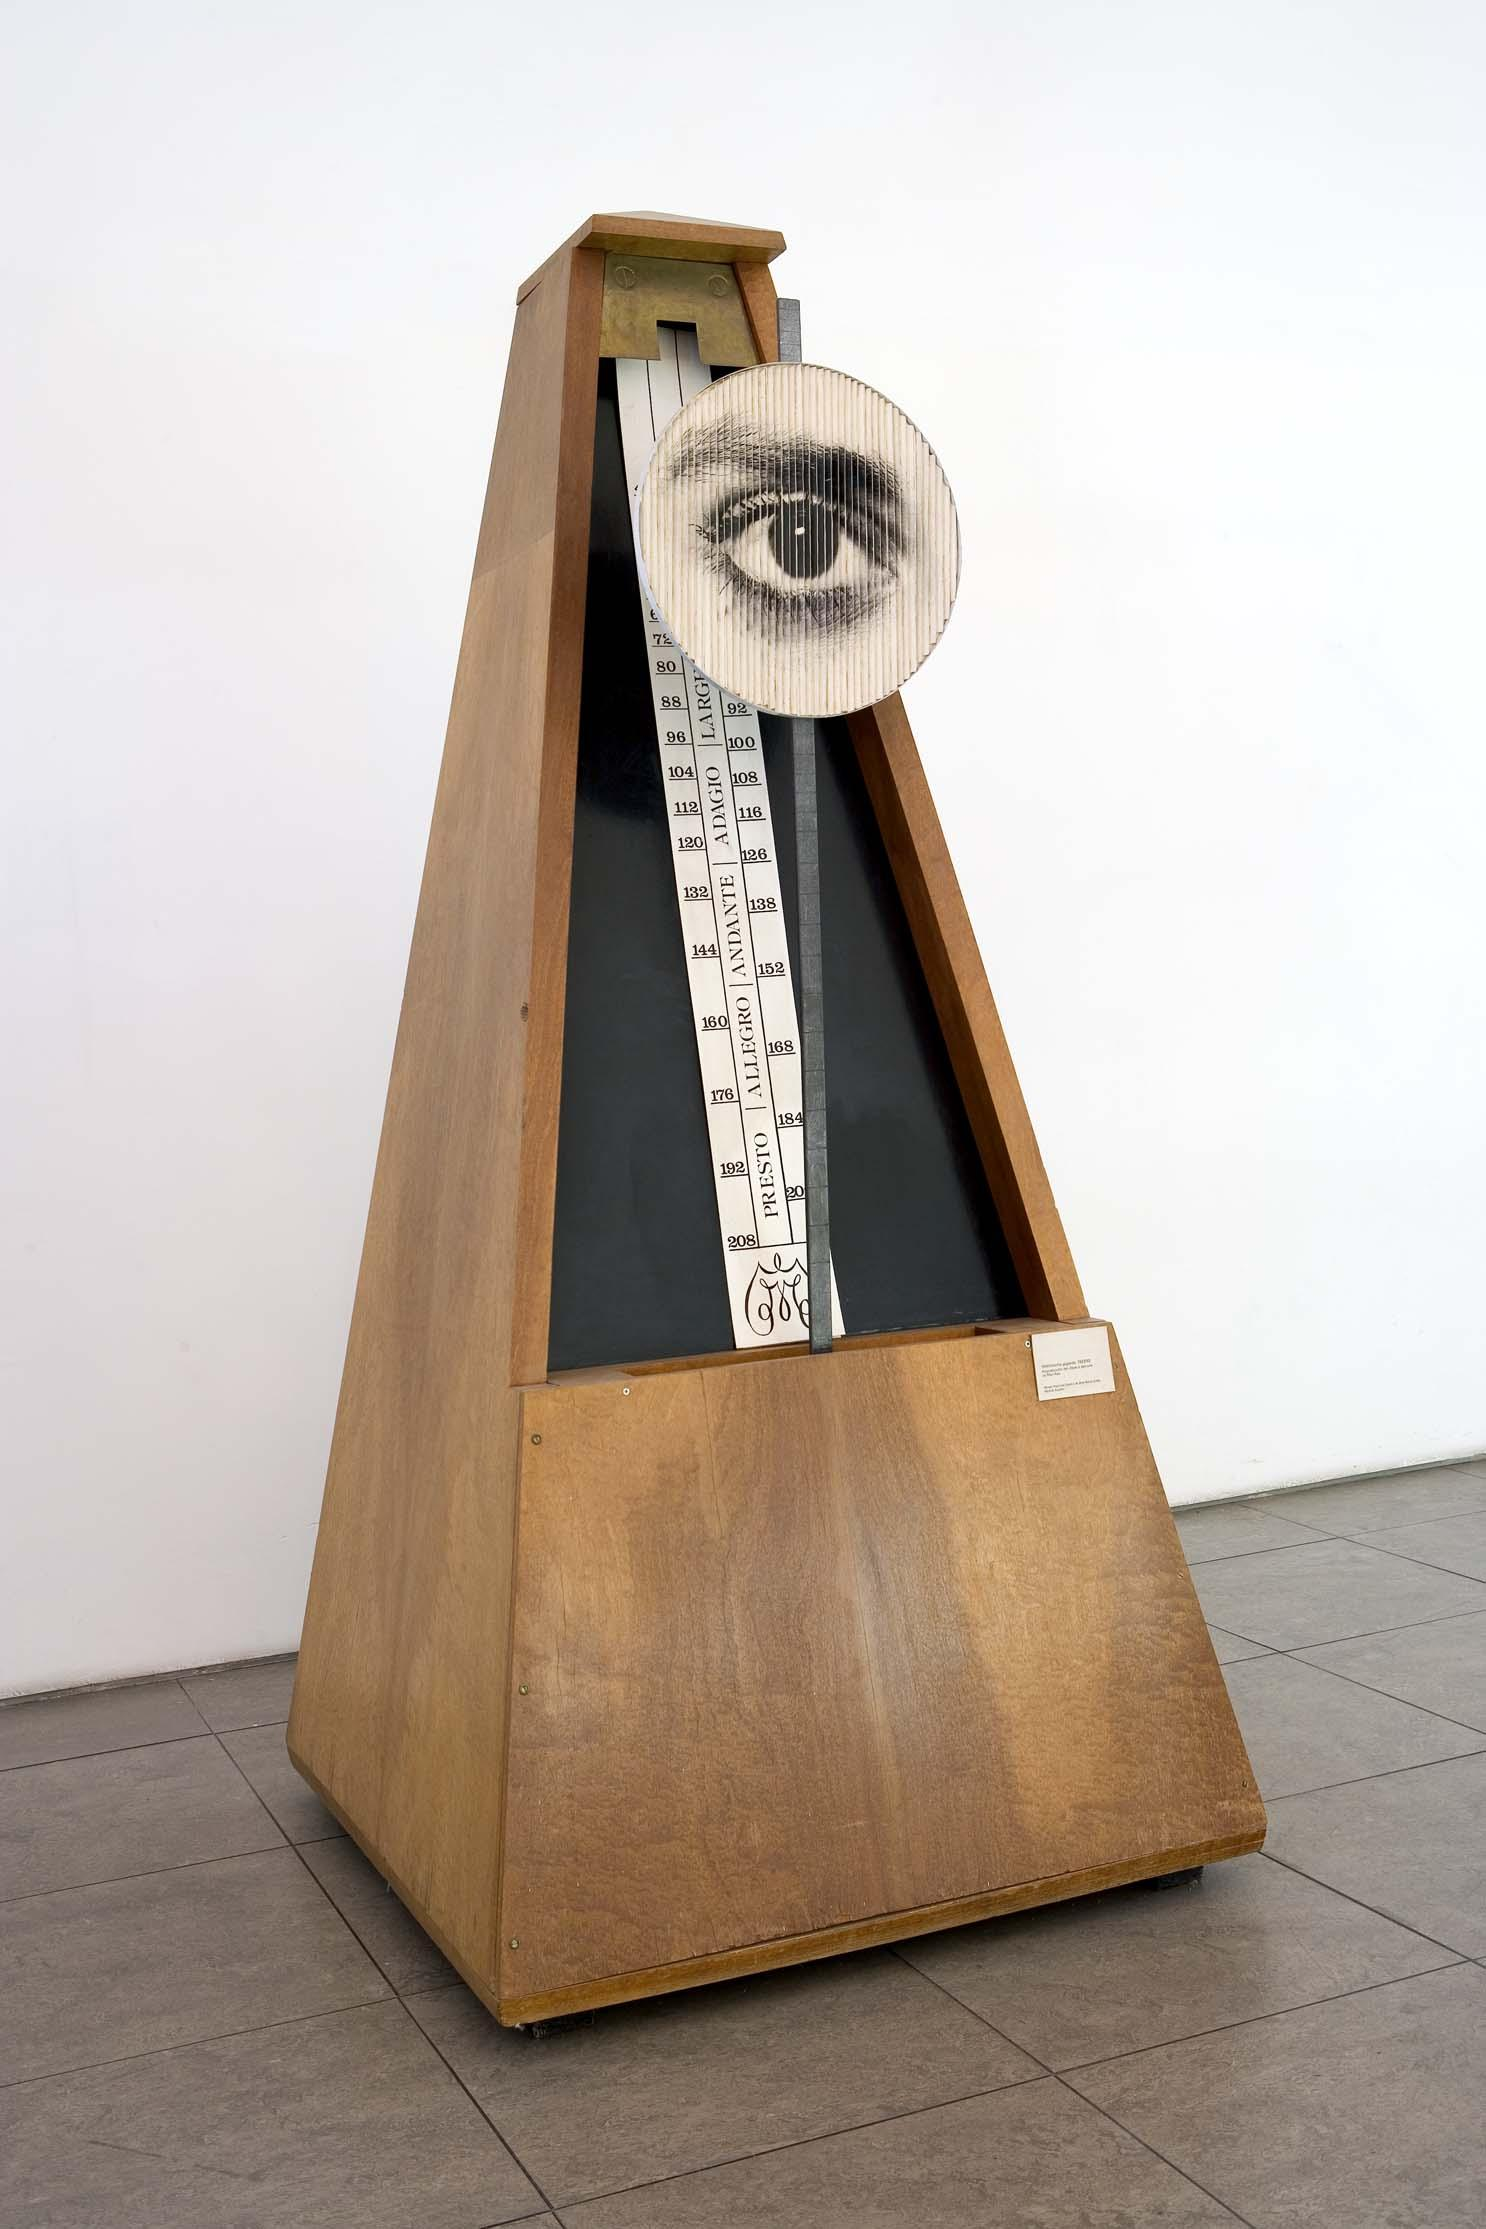 man ray sculpture, links to main pacific review page